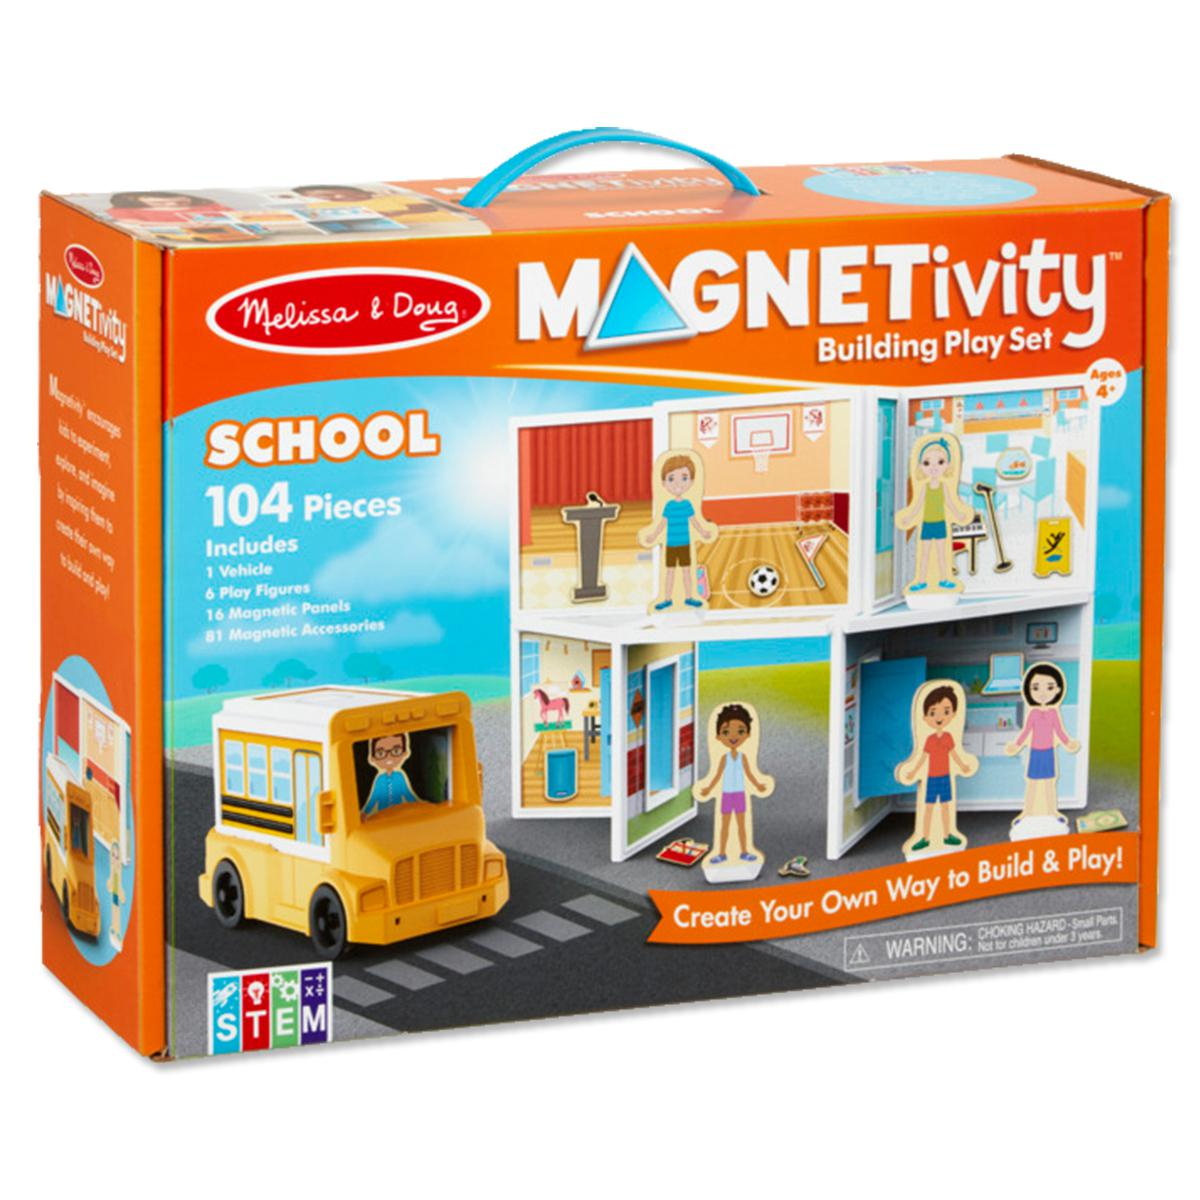 Magnetivity - Magnetic Building Play Set: School